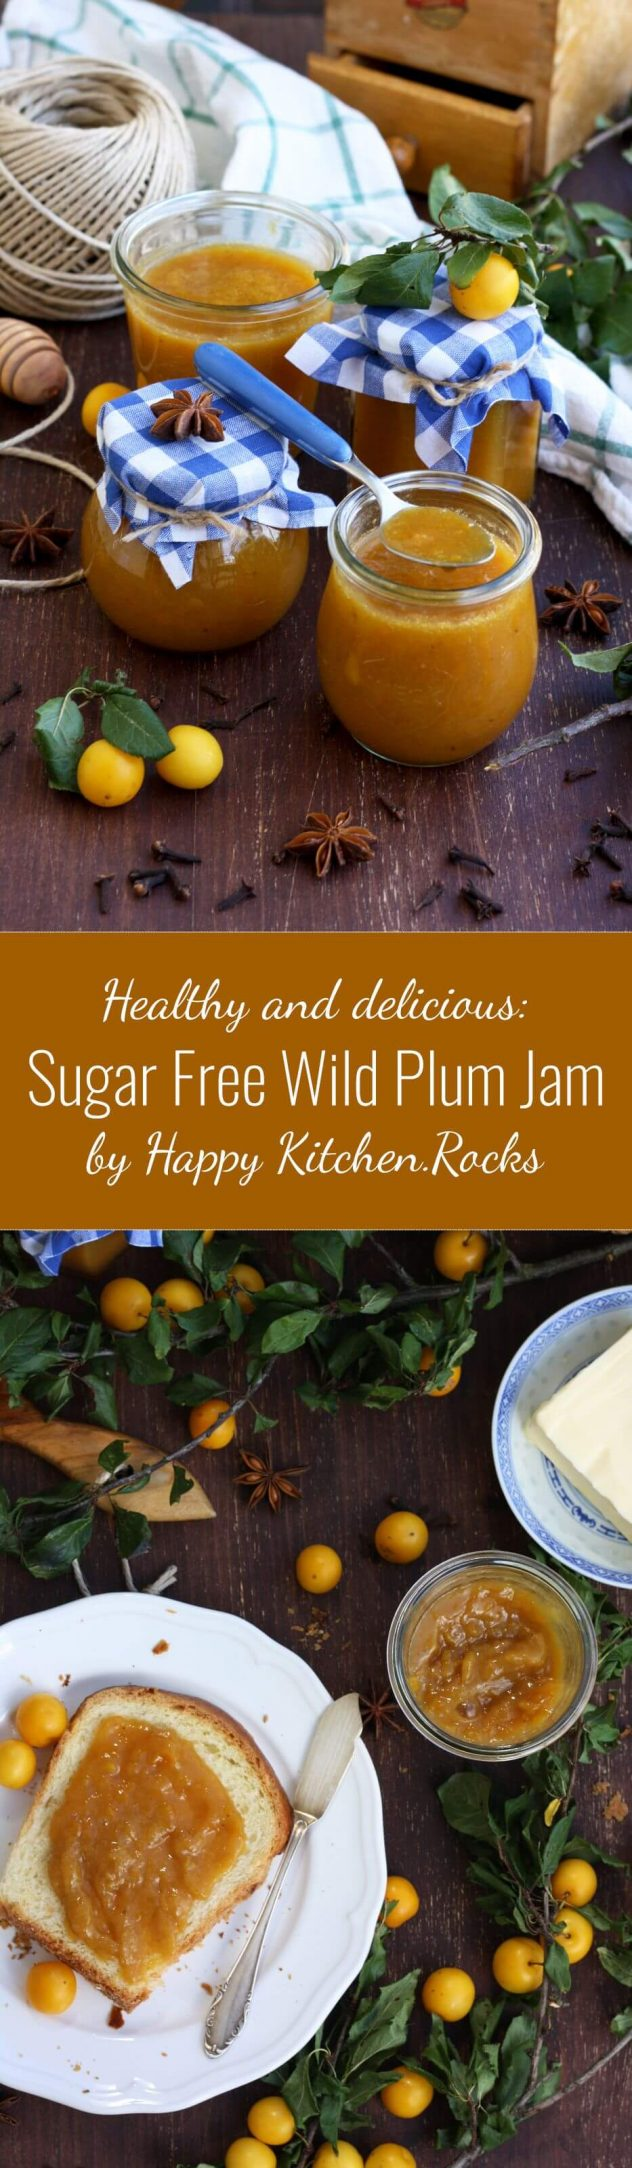 This sugar free wild plum jam is sweetened with a bit of honey and spiced with cloves and anise. Easy and delicious step-by-step recipe.